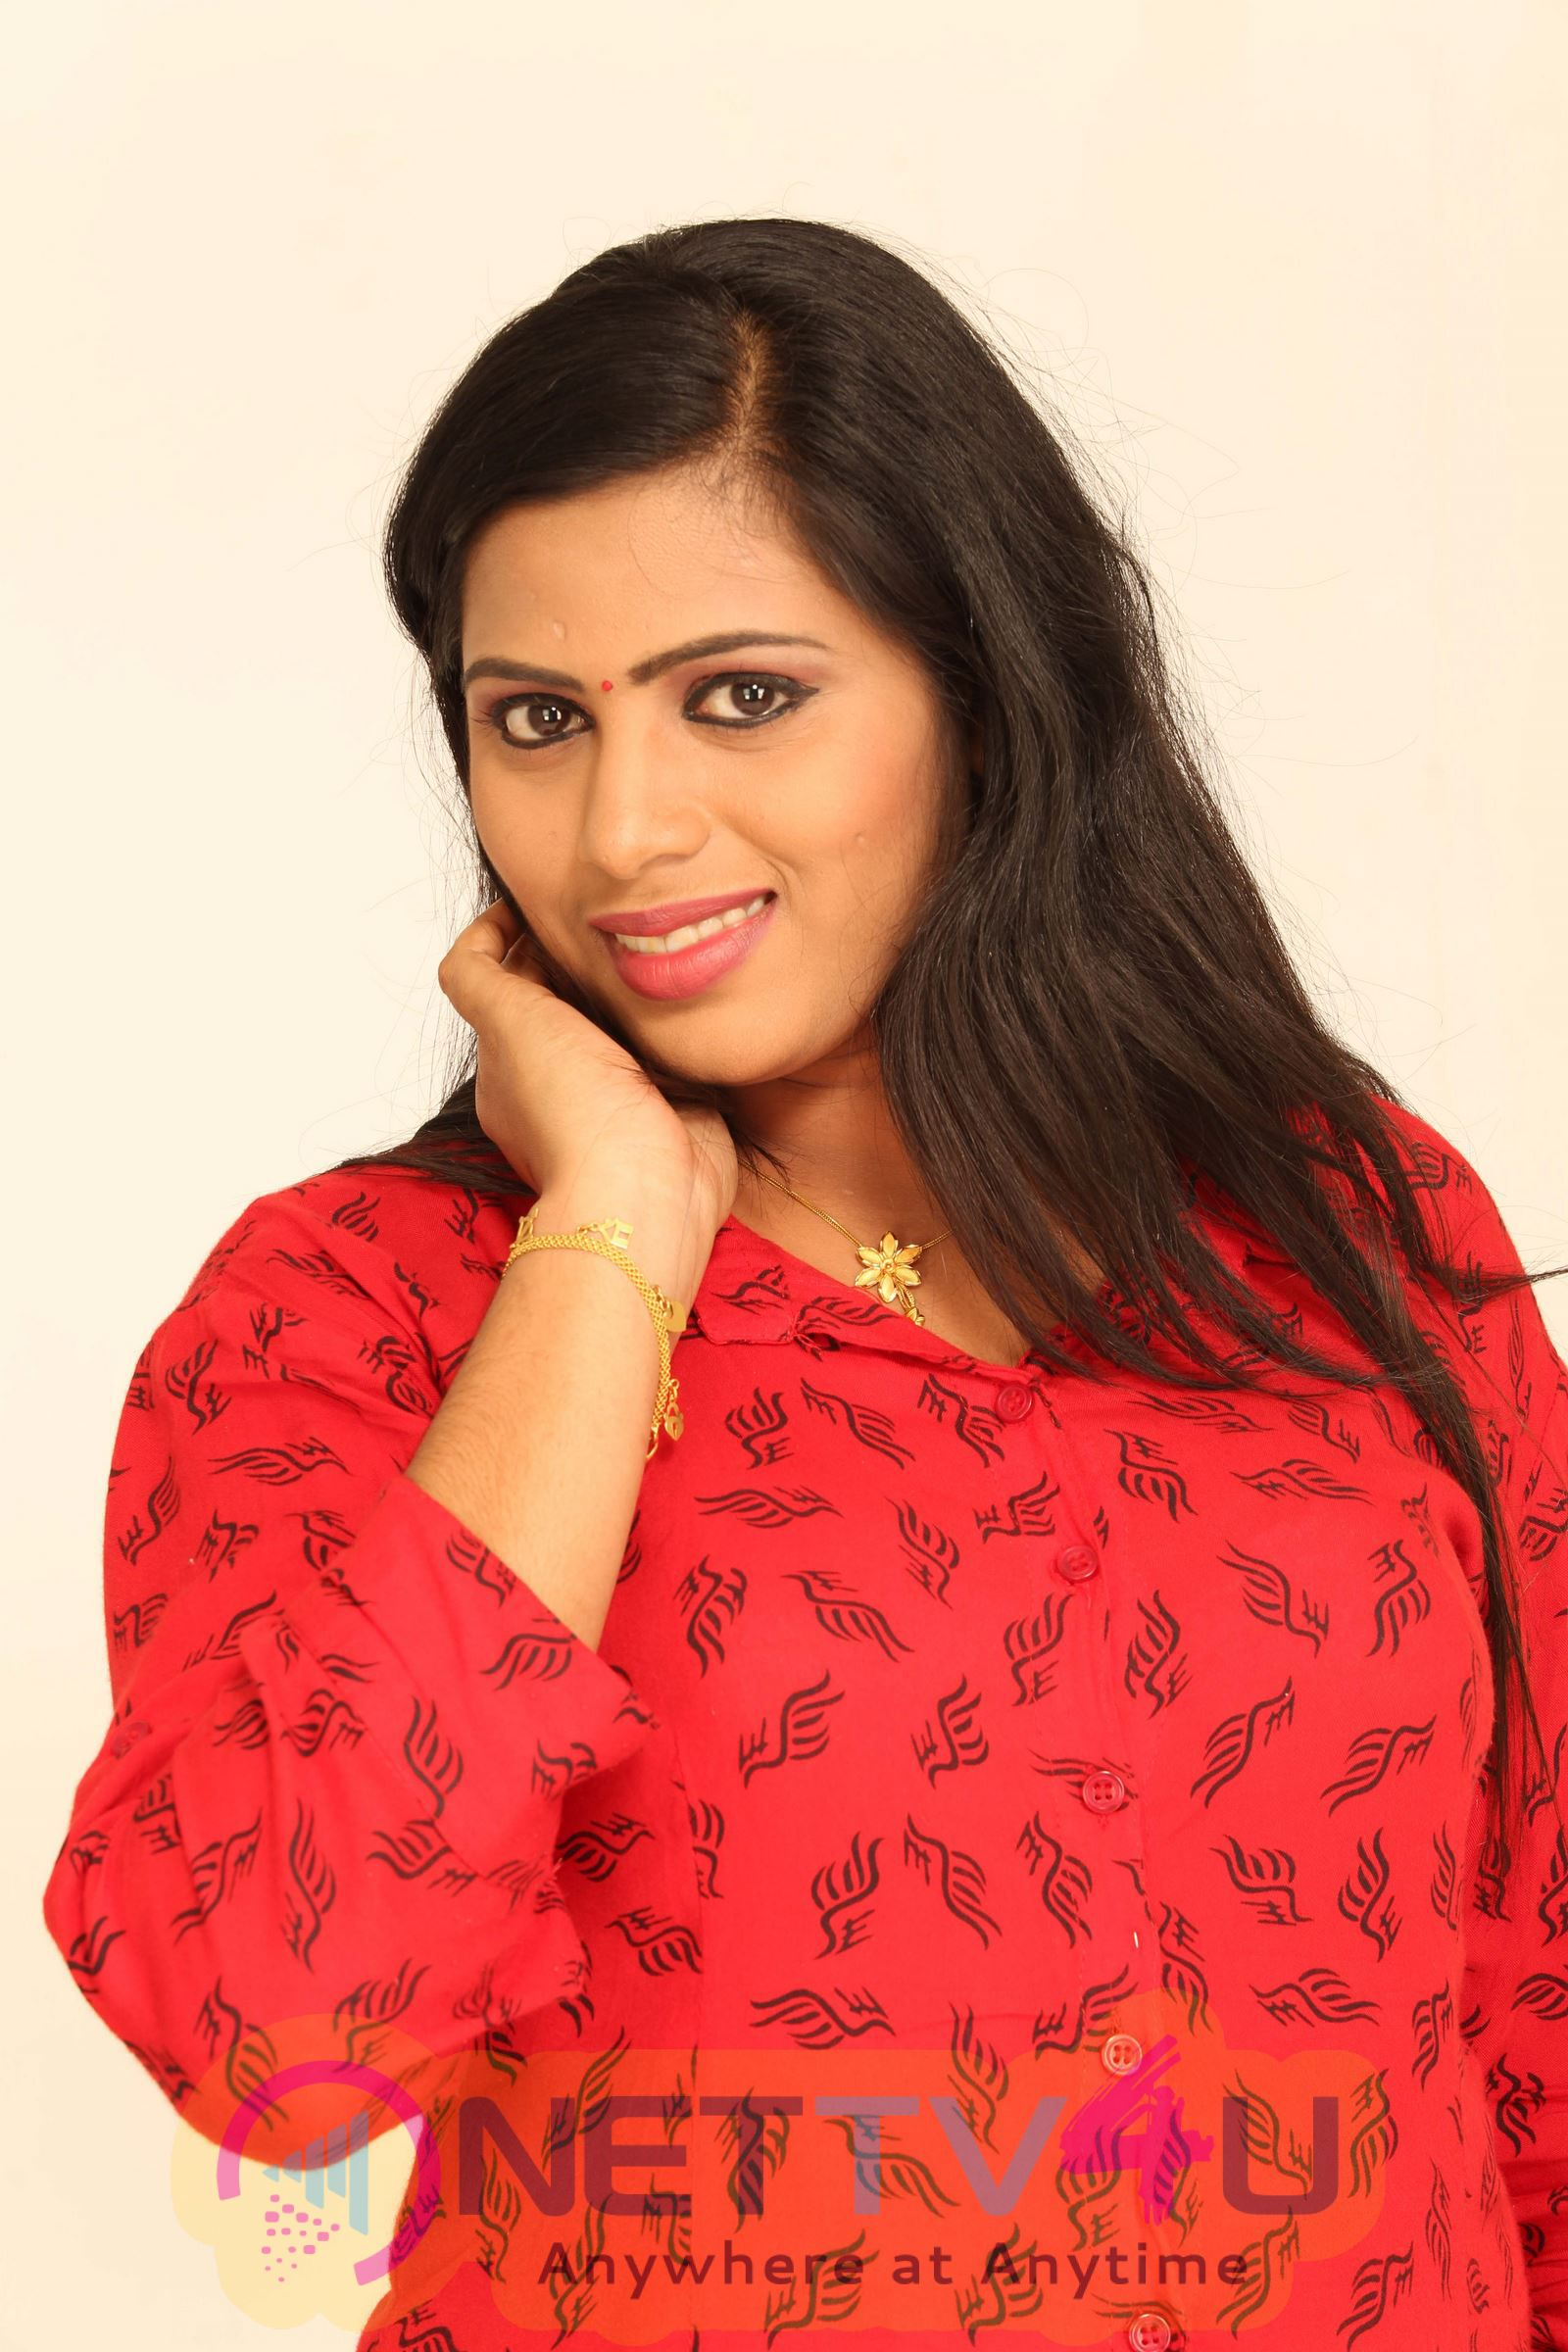 Jaga Tamil Movie Attractive Stills And Cute Posters